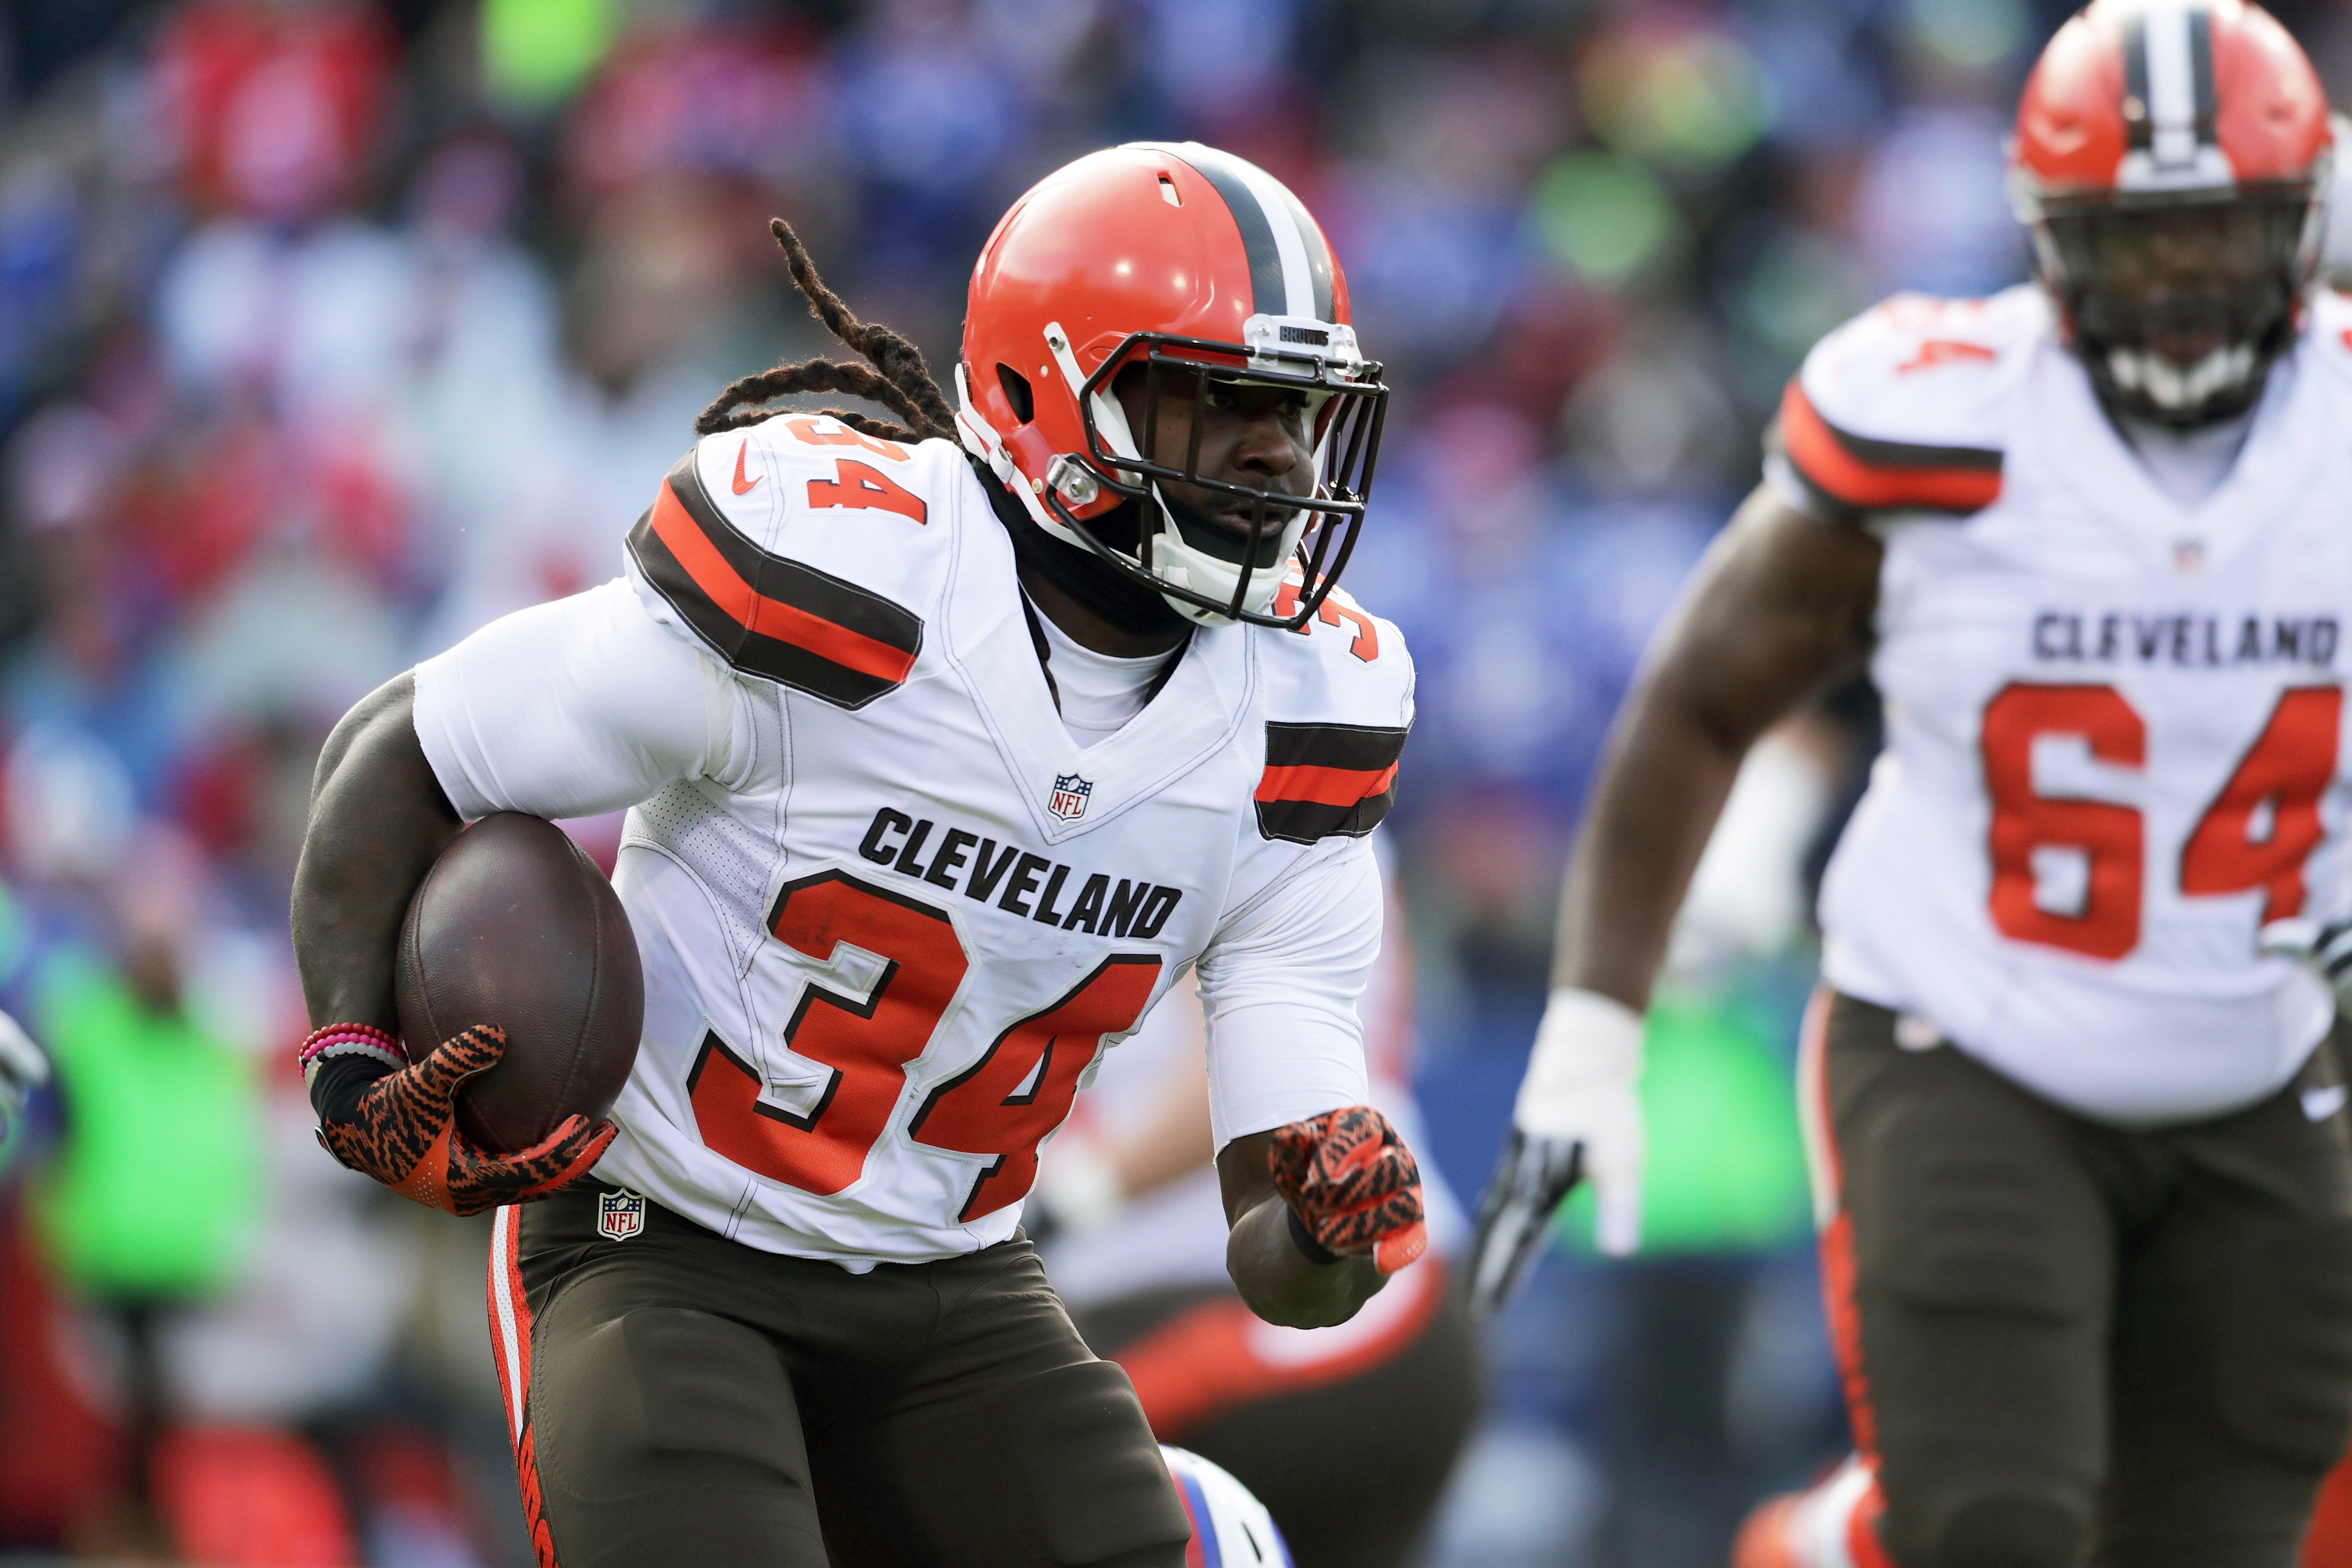 Cleveland Browns Five Fantasy Football Related Team Names